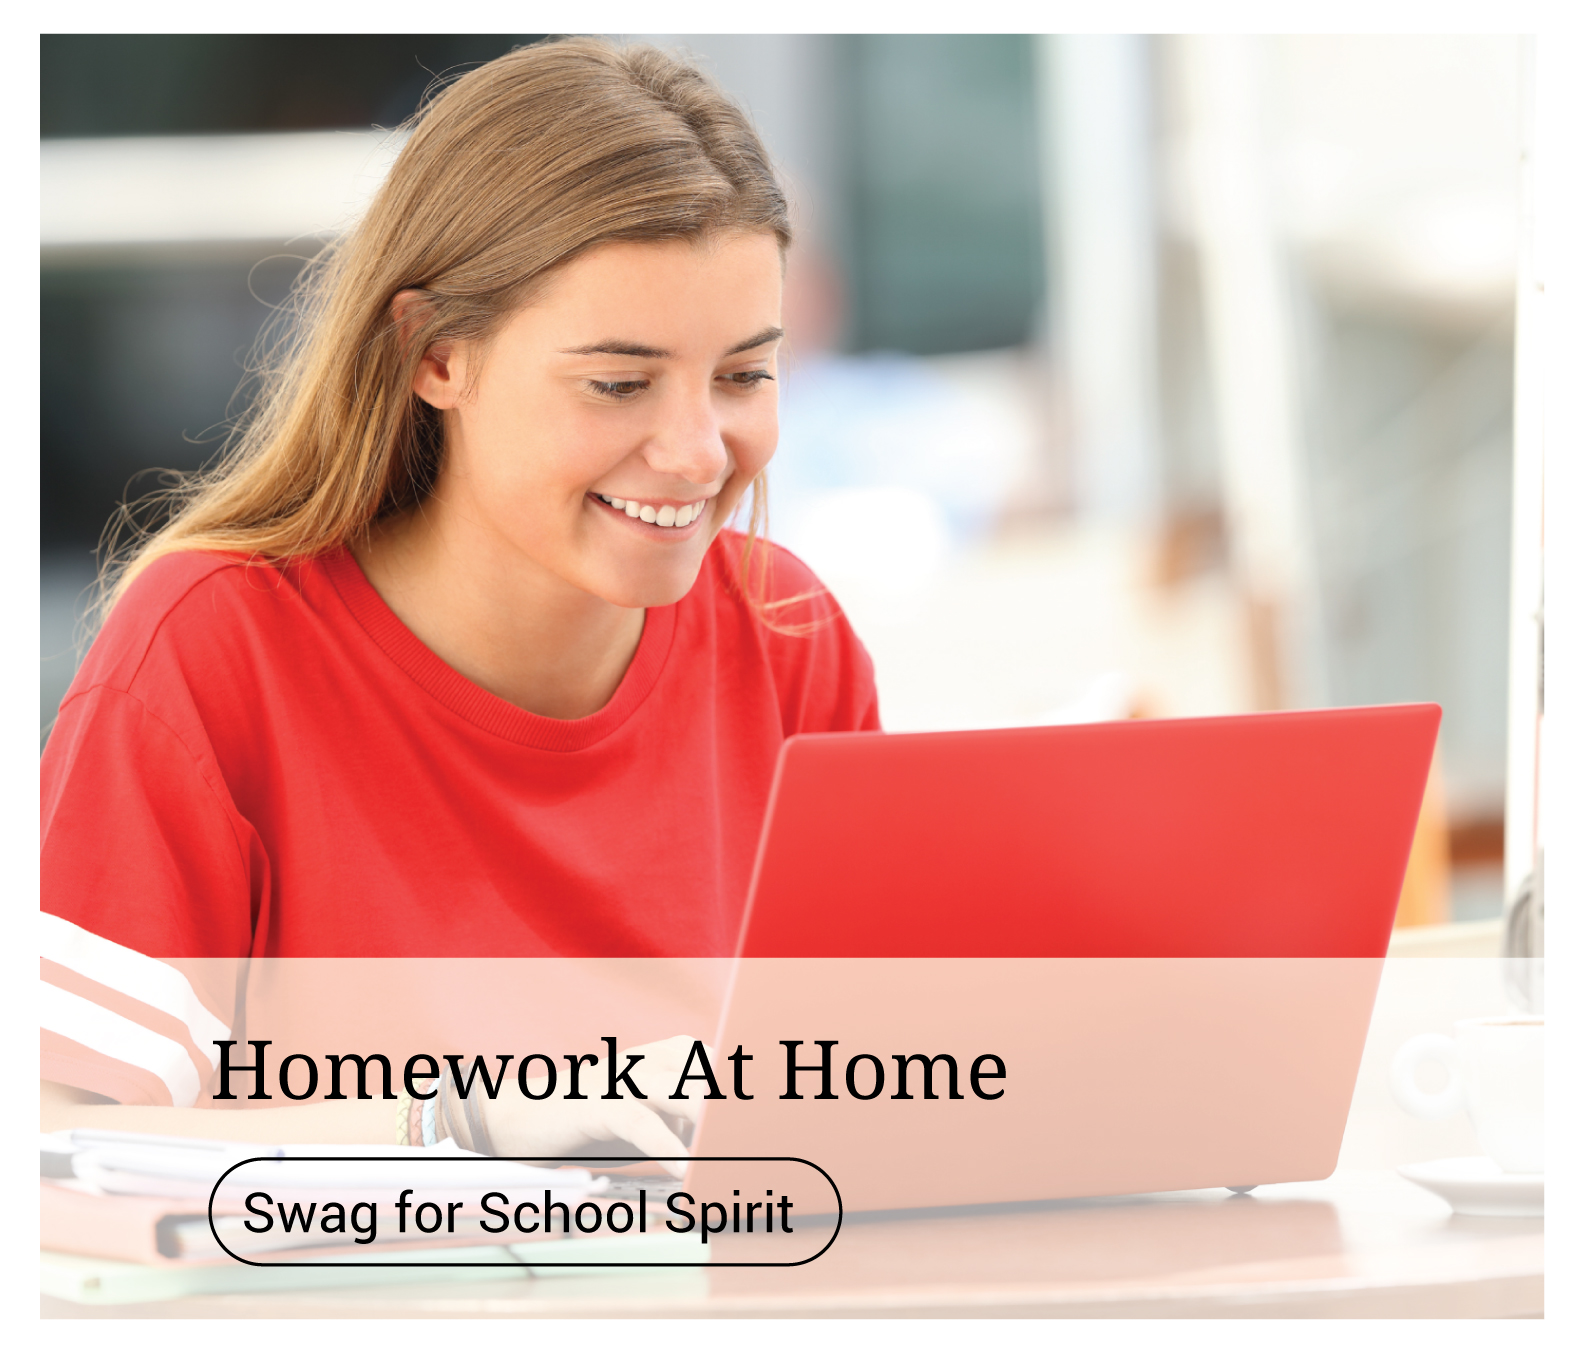 Homework At Home